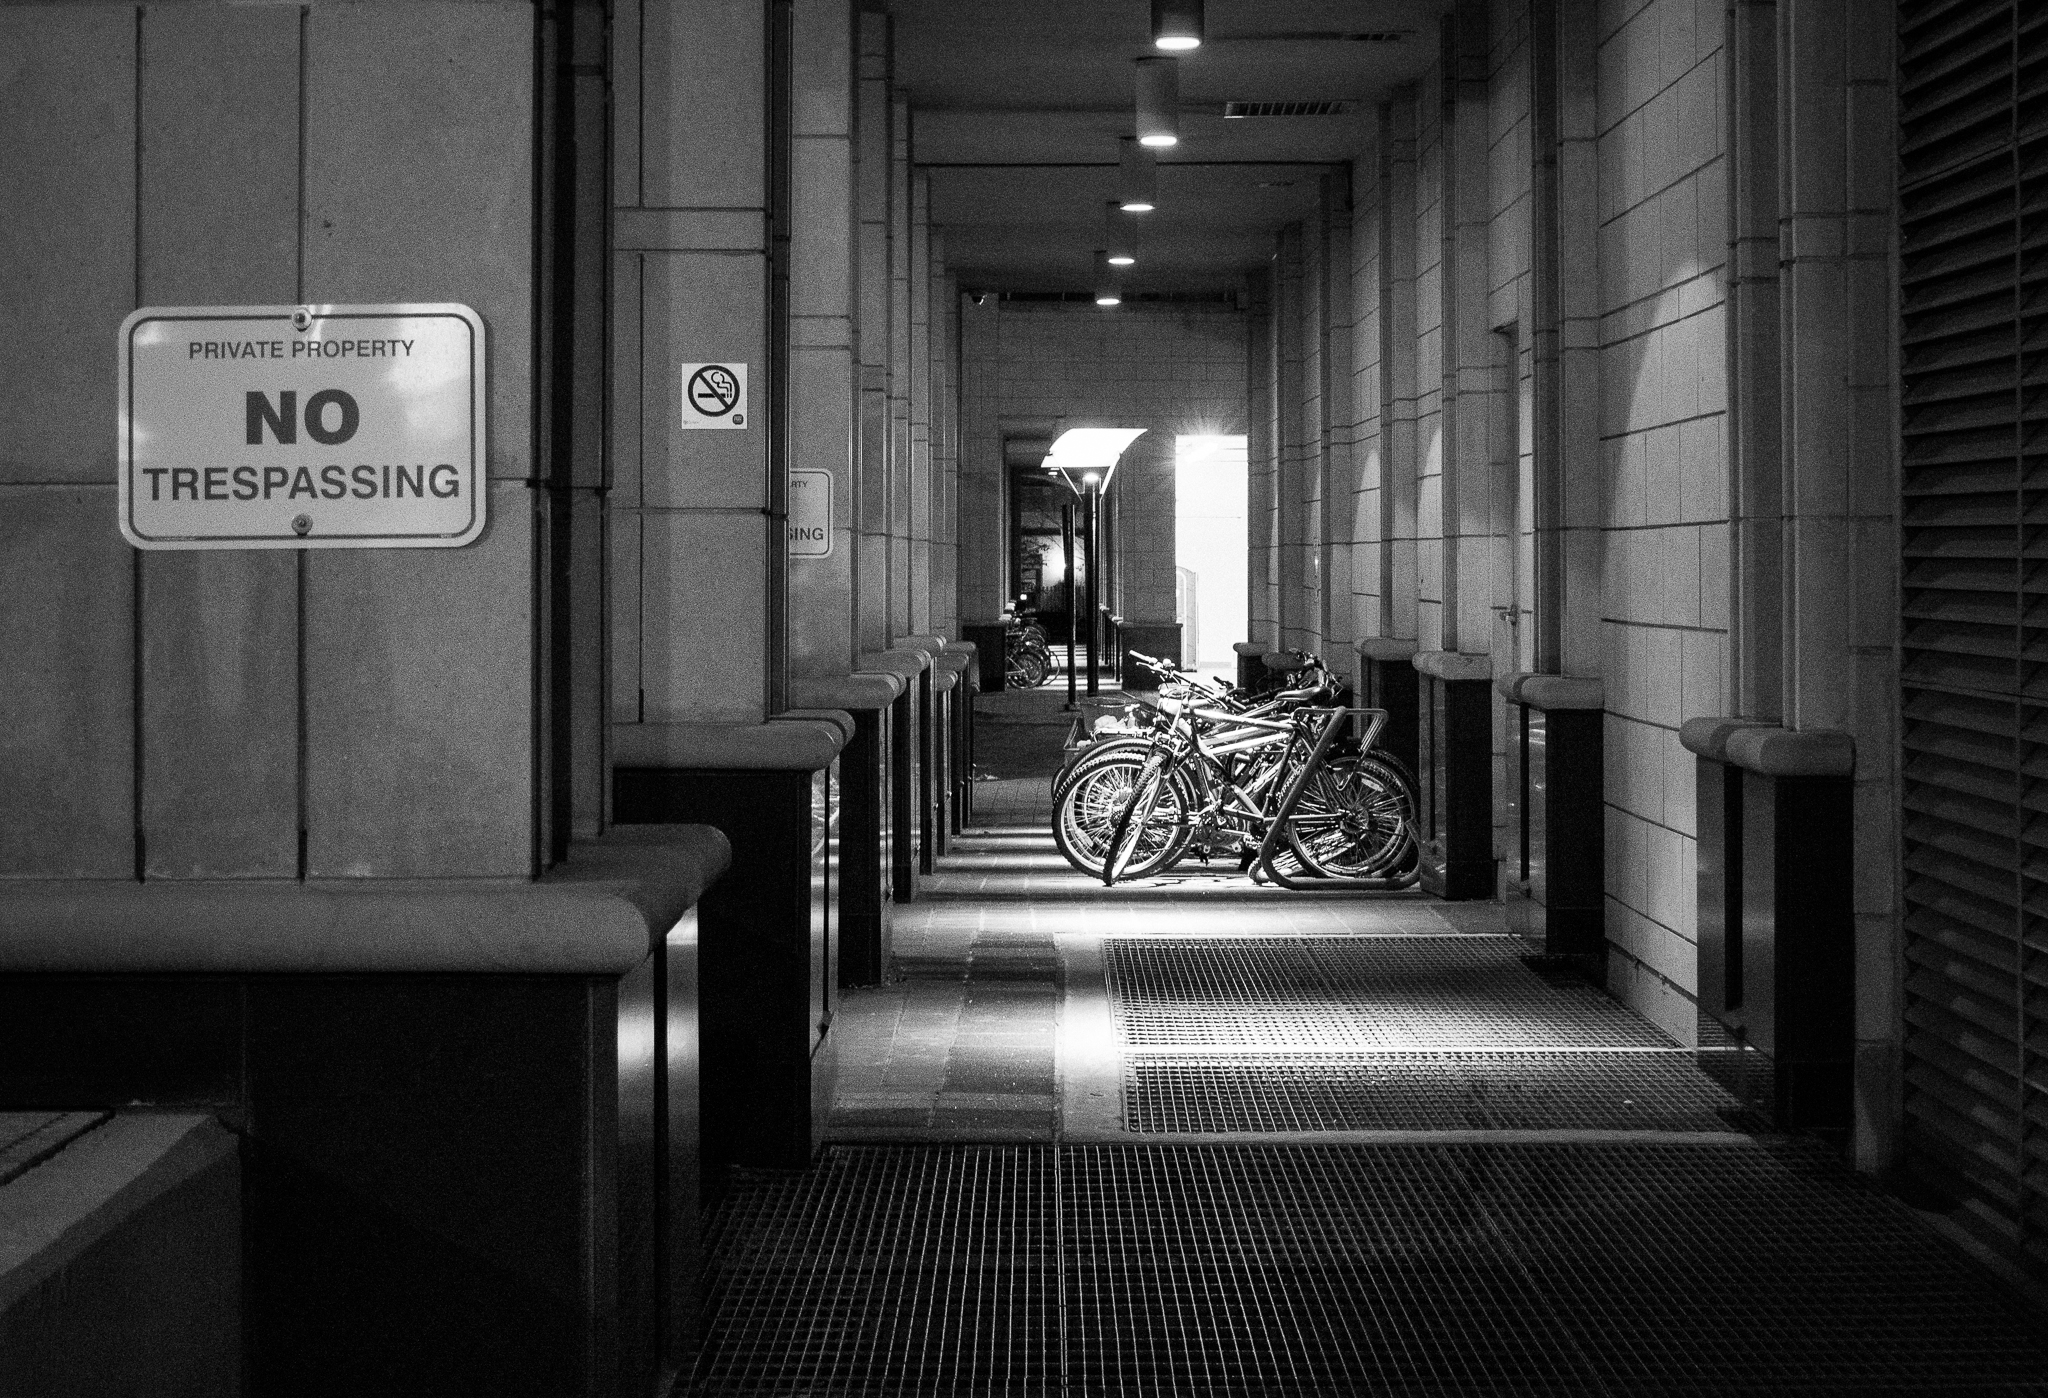 No Trespassing (1/20s, f/6.3, ISO5000)